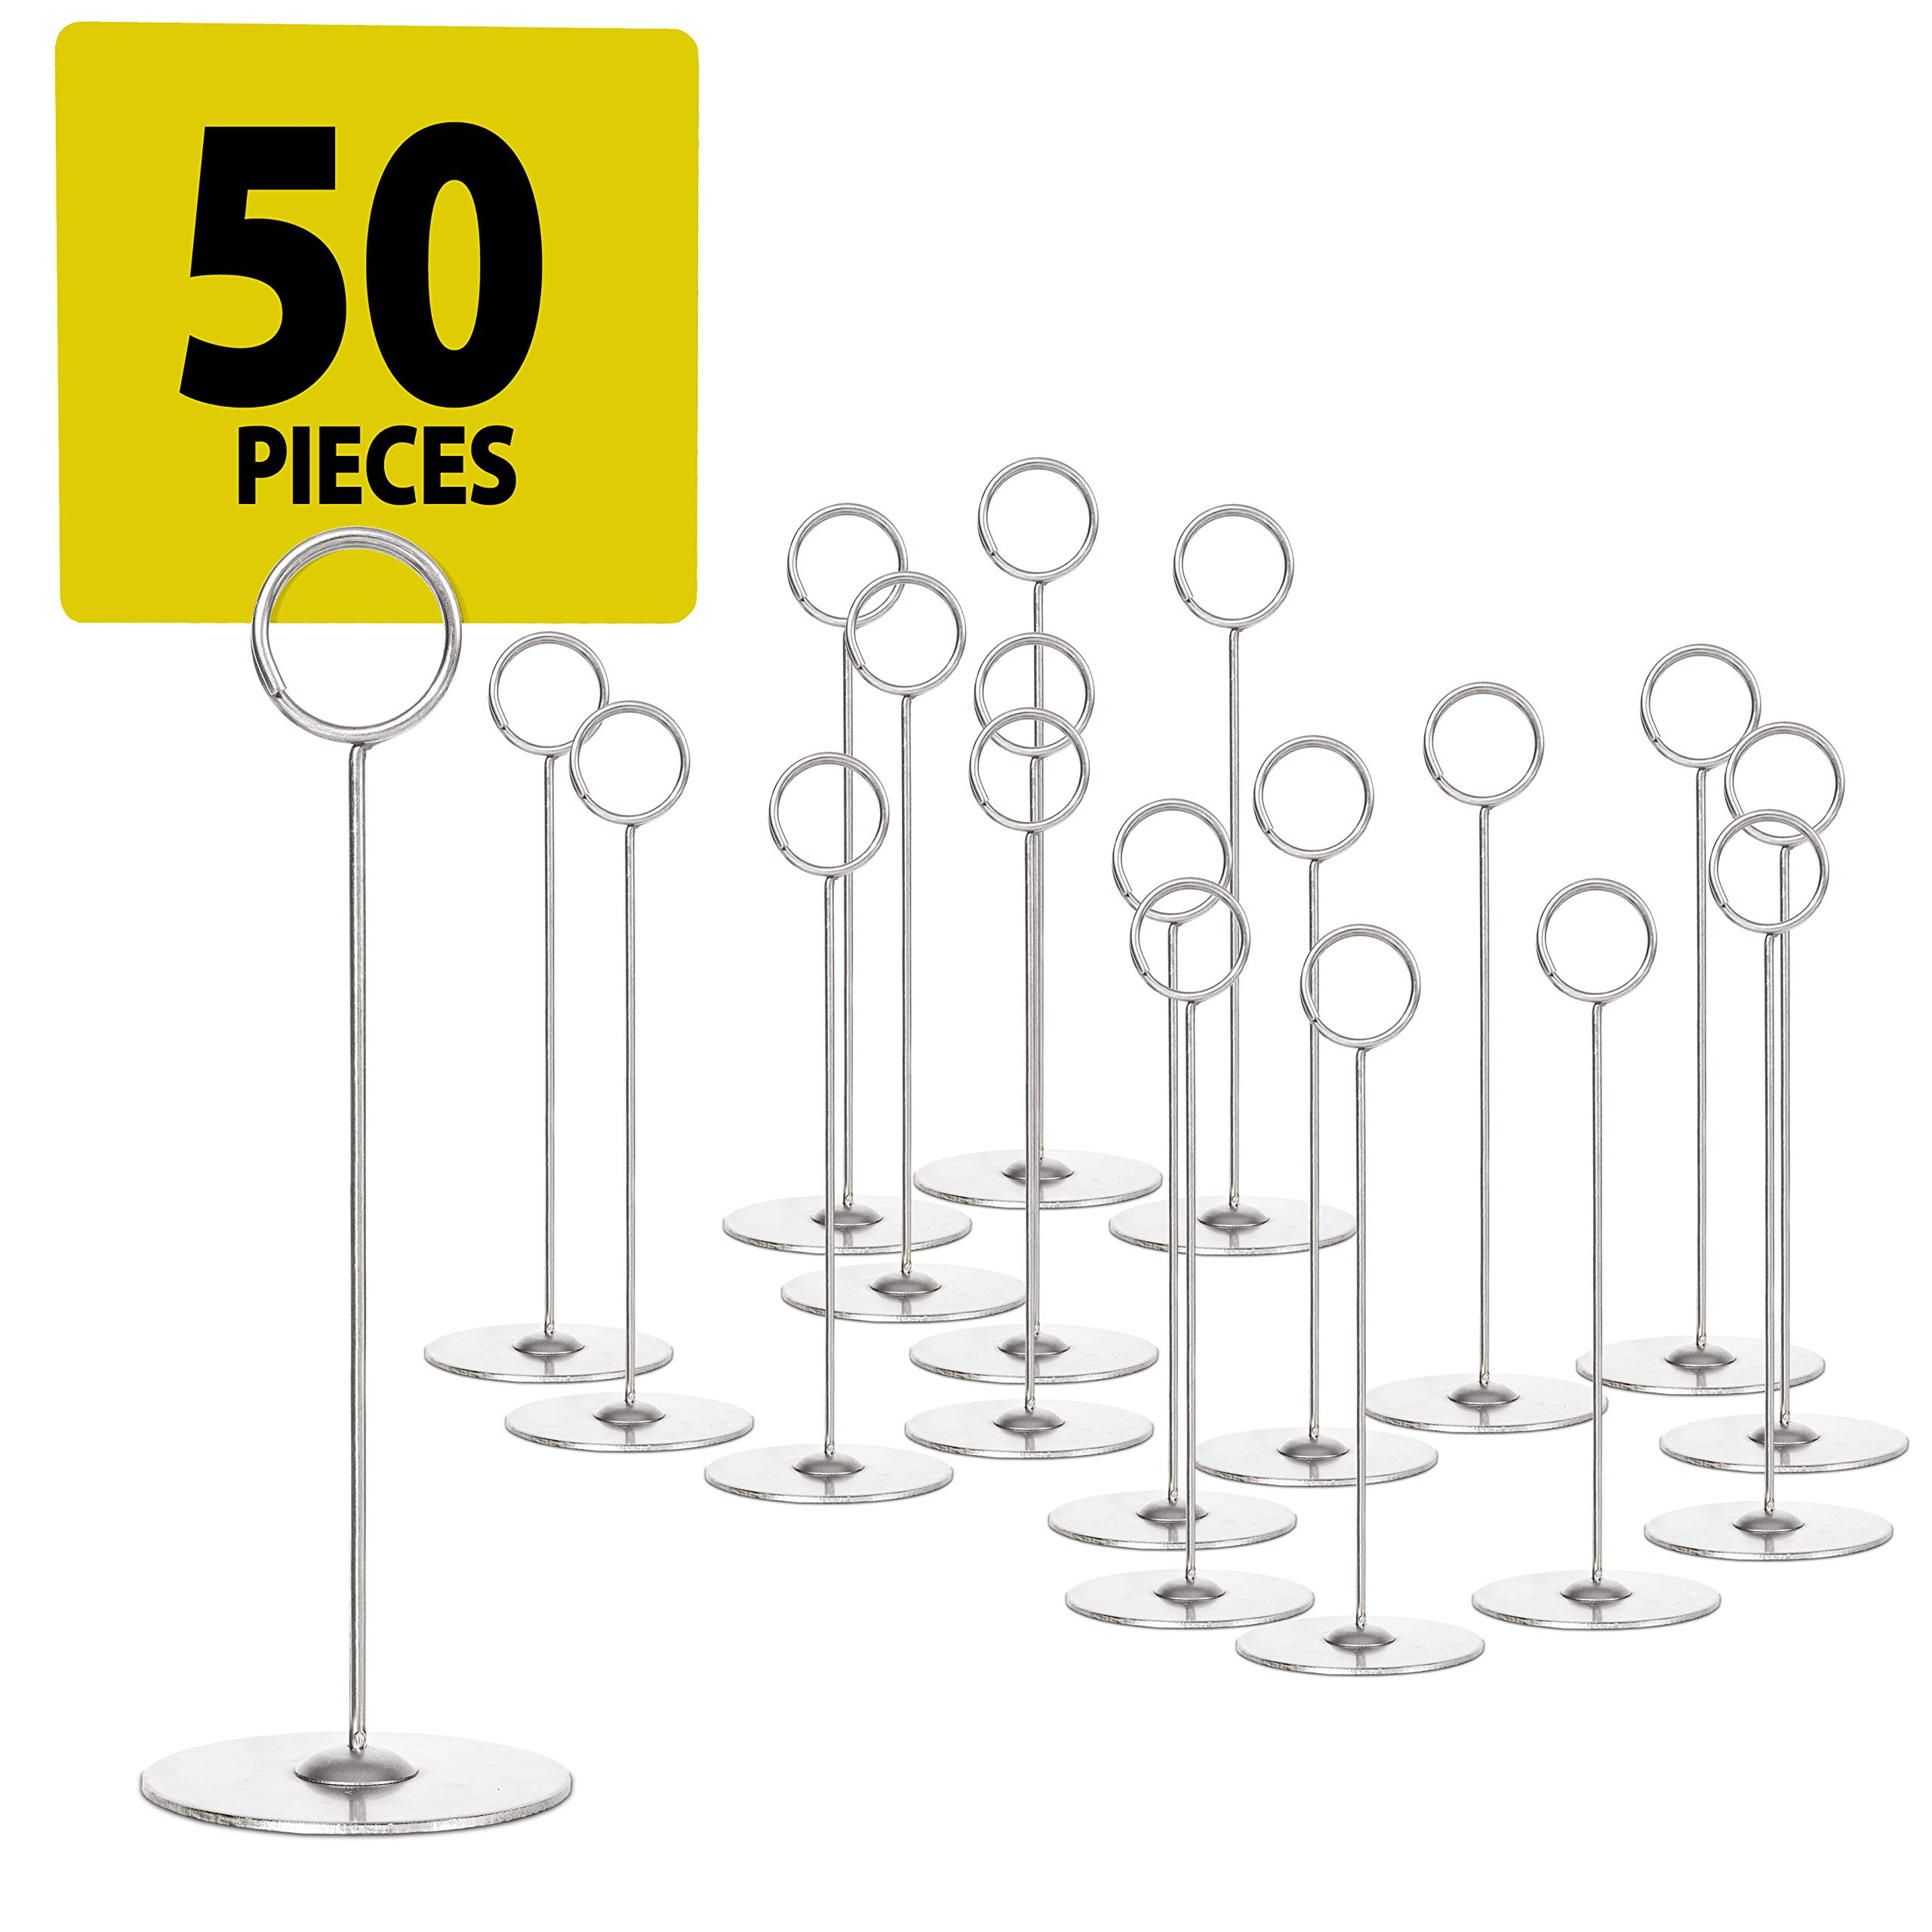 Set of 50 Place Card Holders - 8'' Table Number Holder Stand to Hold Photo Numbers Reserved Sign Recipe Note for Wedding Party Restaurant Menu Banquet or Pictures Heavy Base Tabletop Cardholder(Silver)